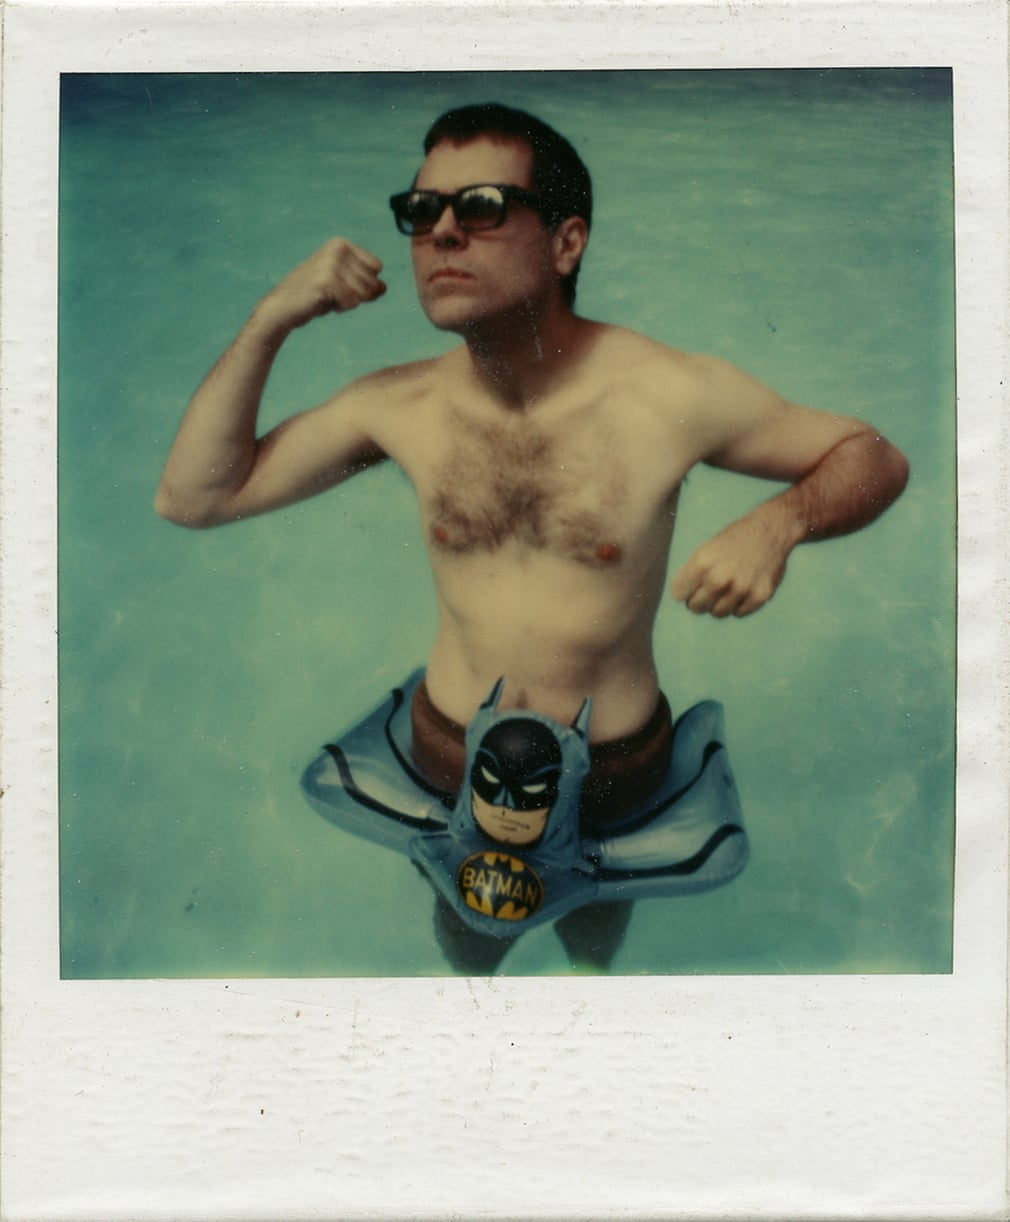 Glenn O'Brien, SX-70 Polaroid, Westchester, New York, 1980